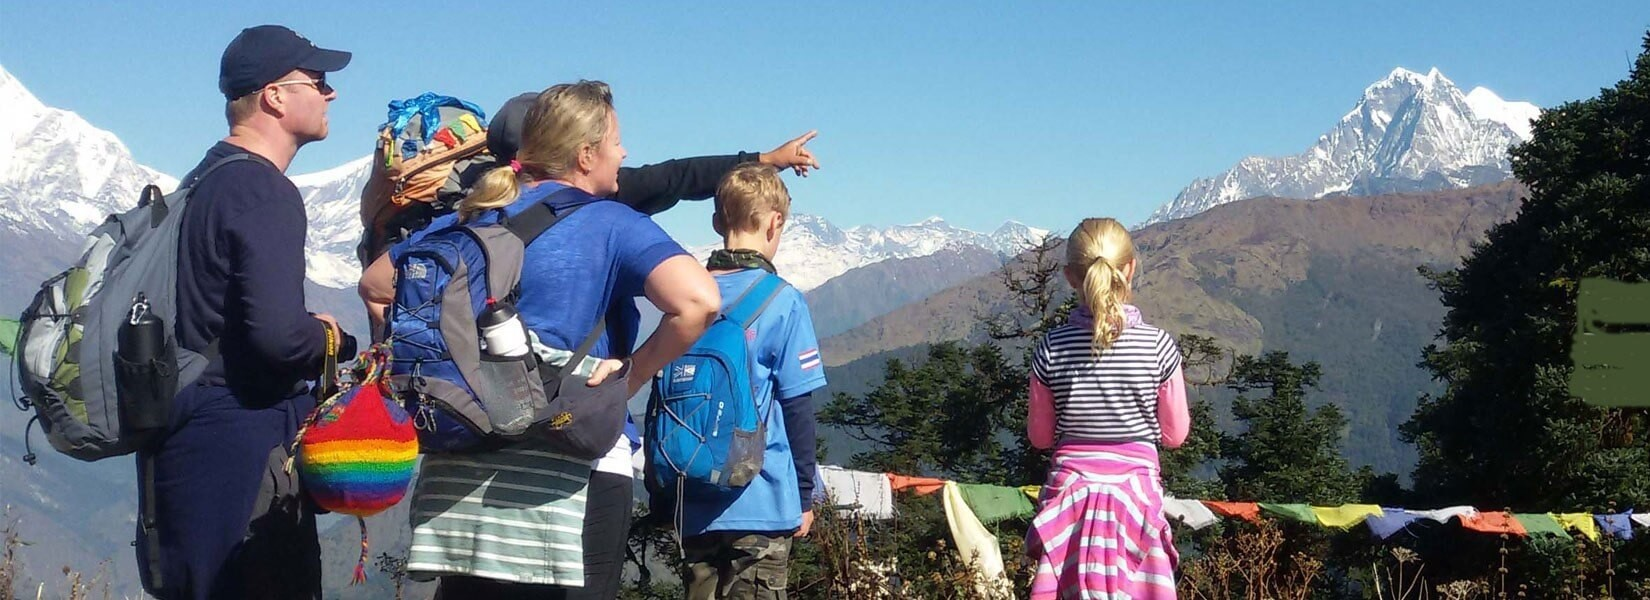 Trekking in Nepal with Kids